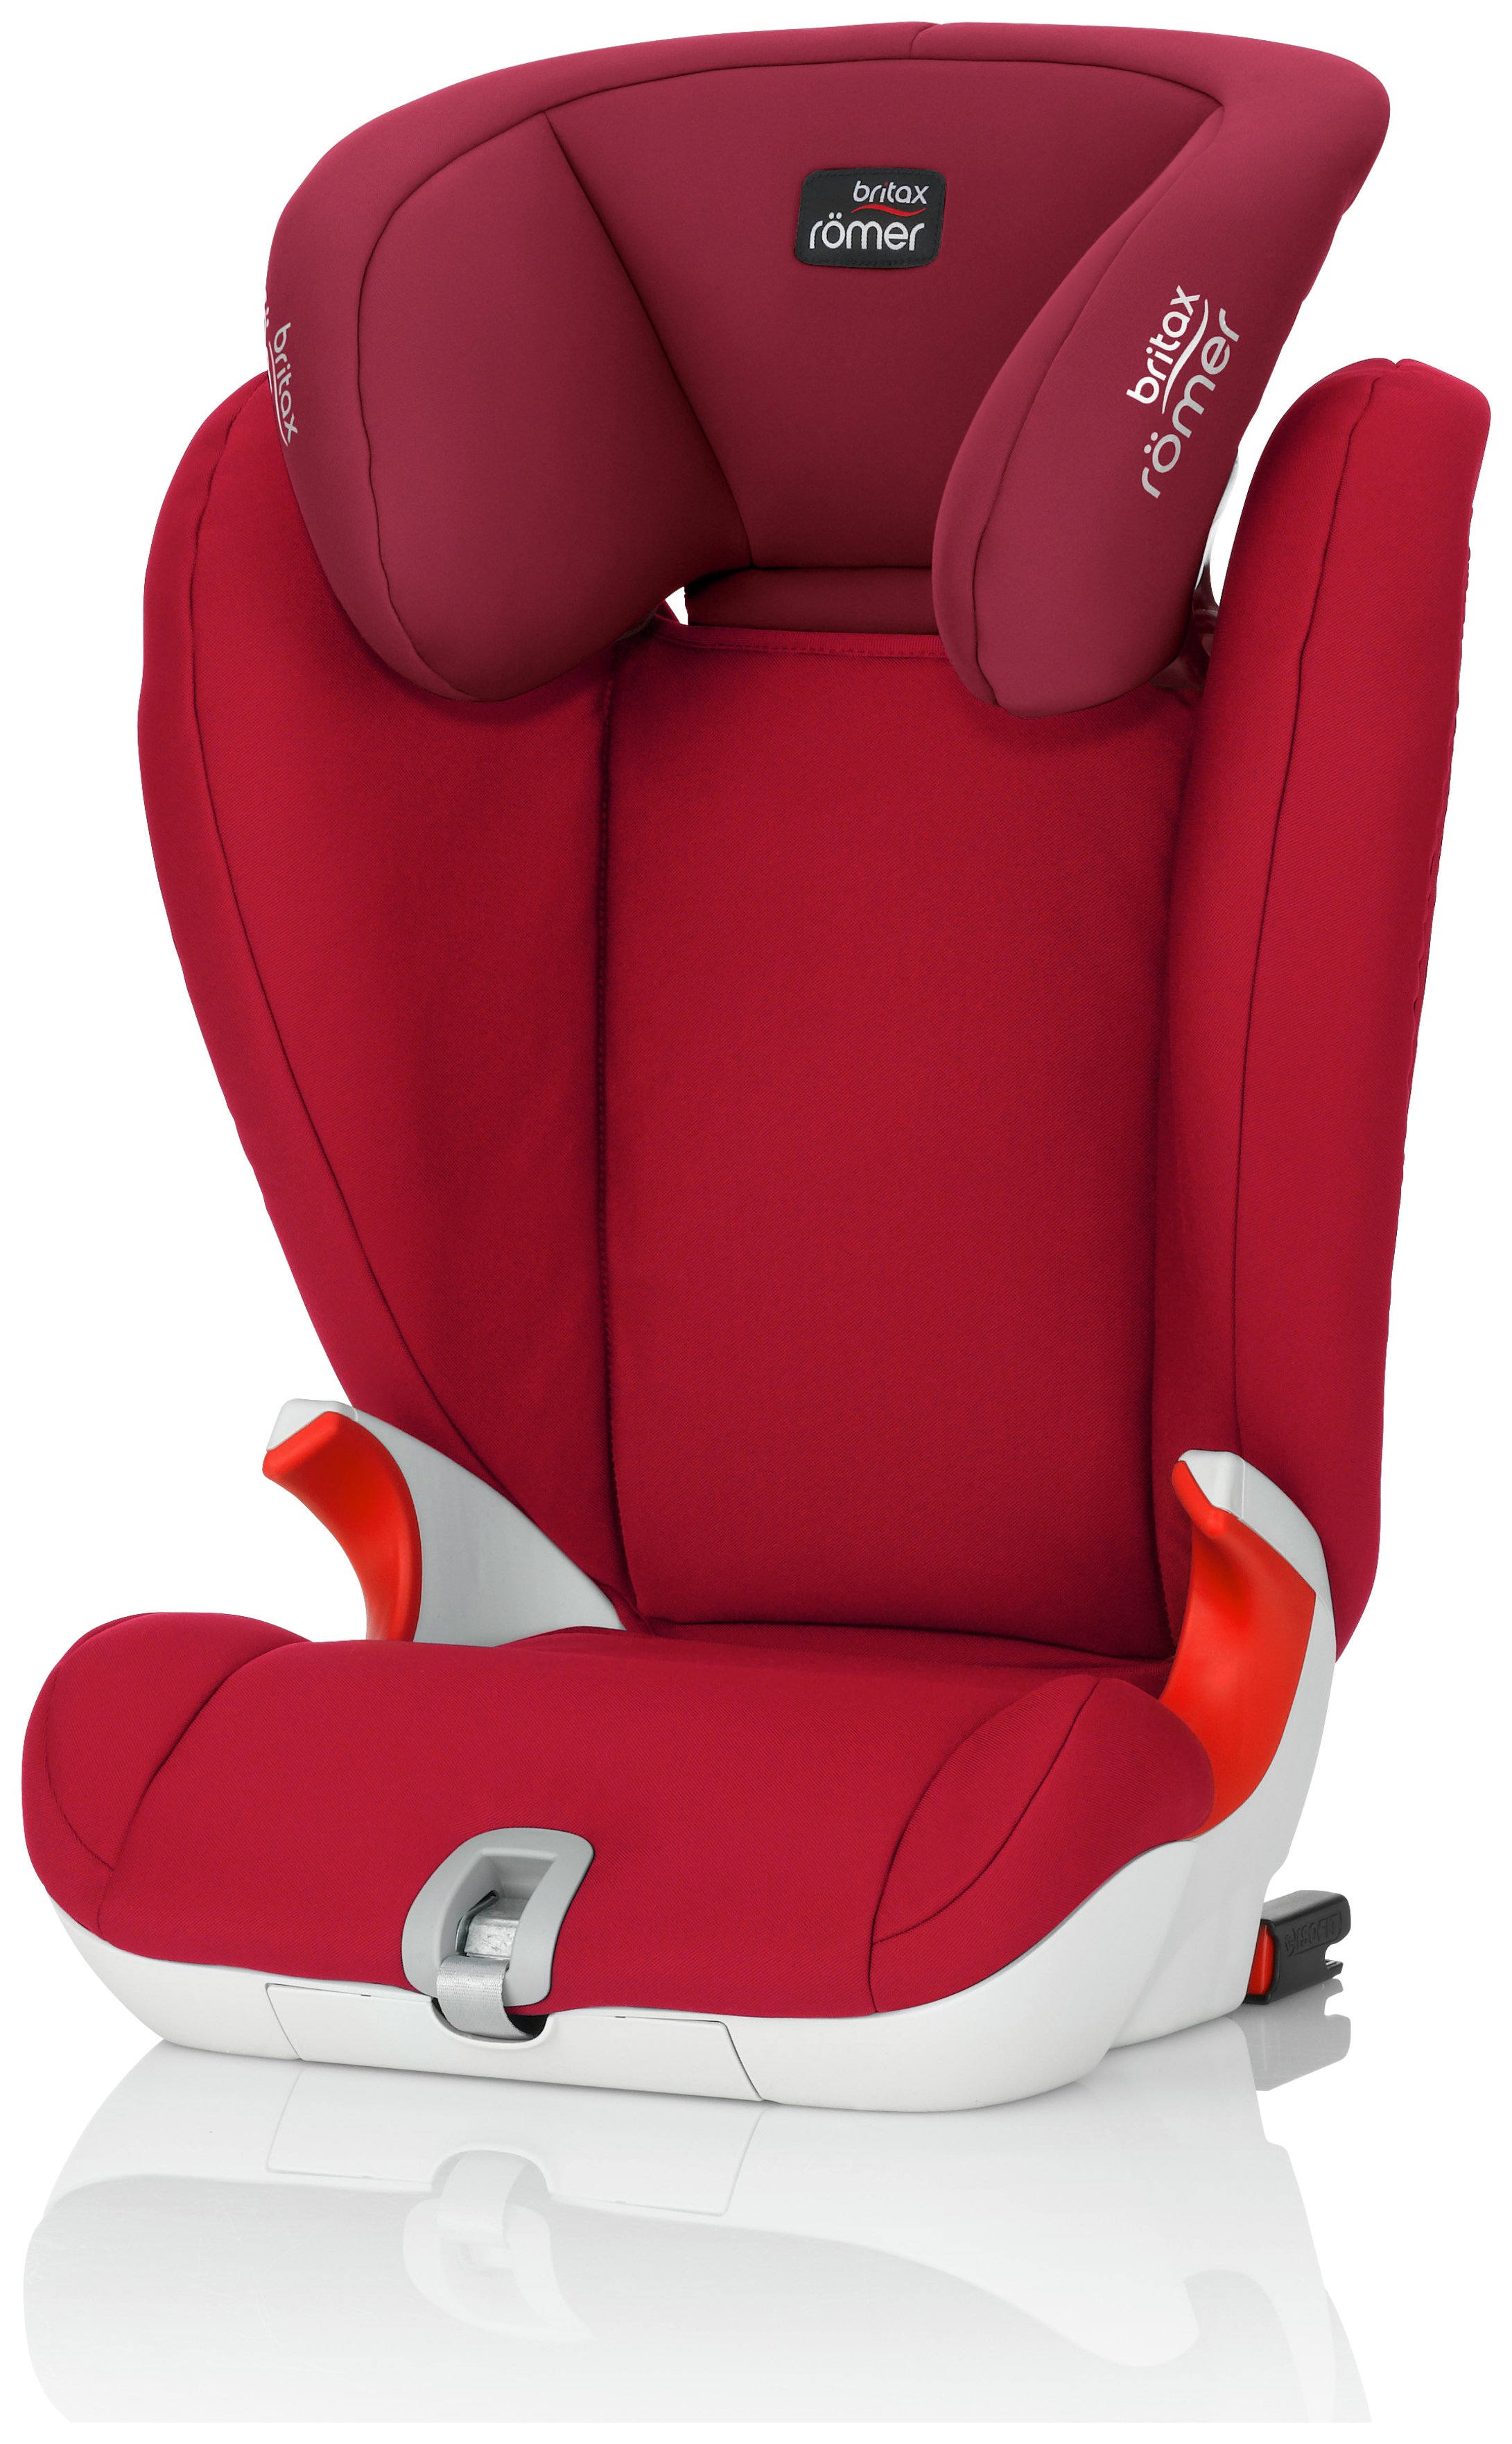 Image of Britax Romer KIDFIX SL Group 2-3 Car Seat ??? Flame Red